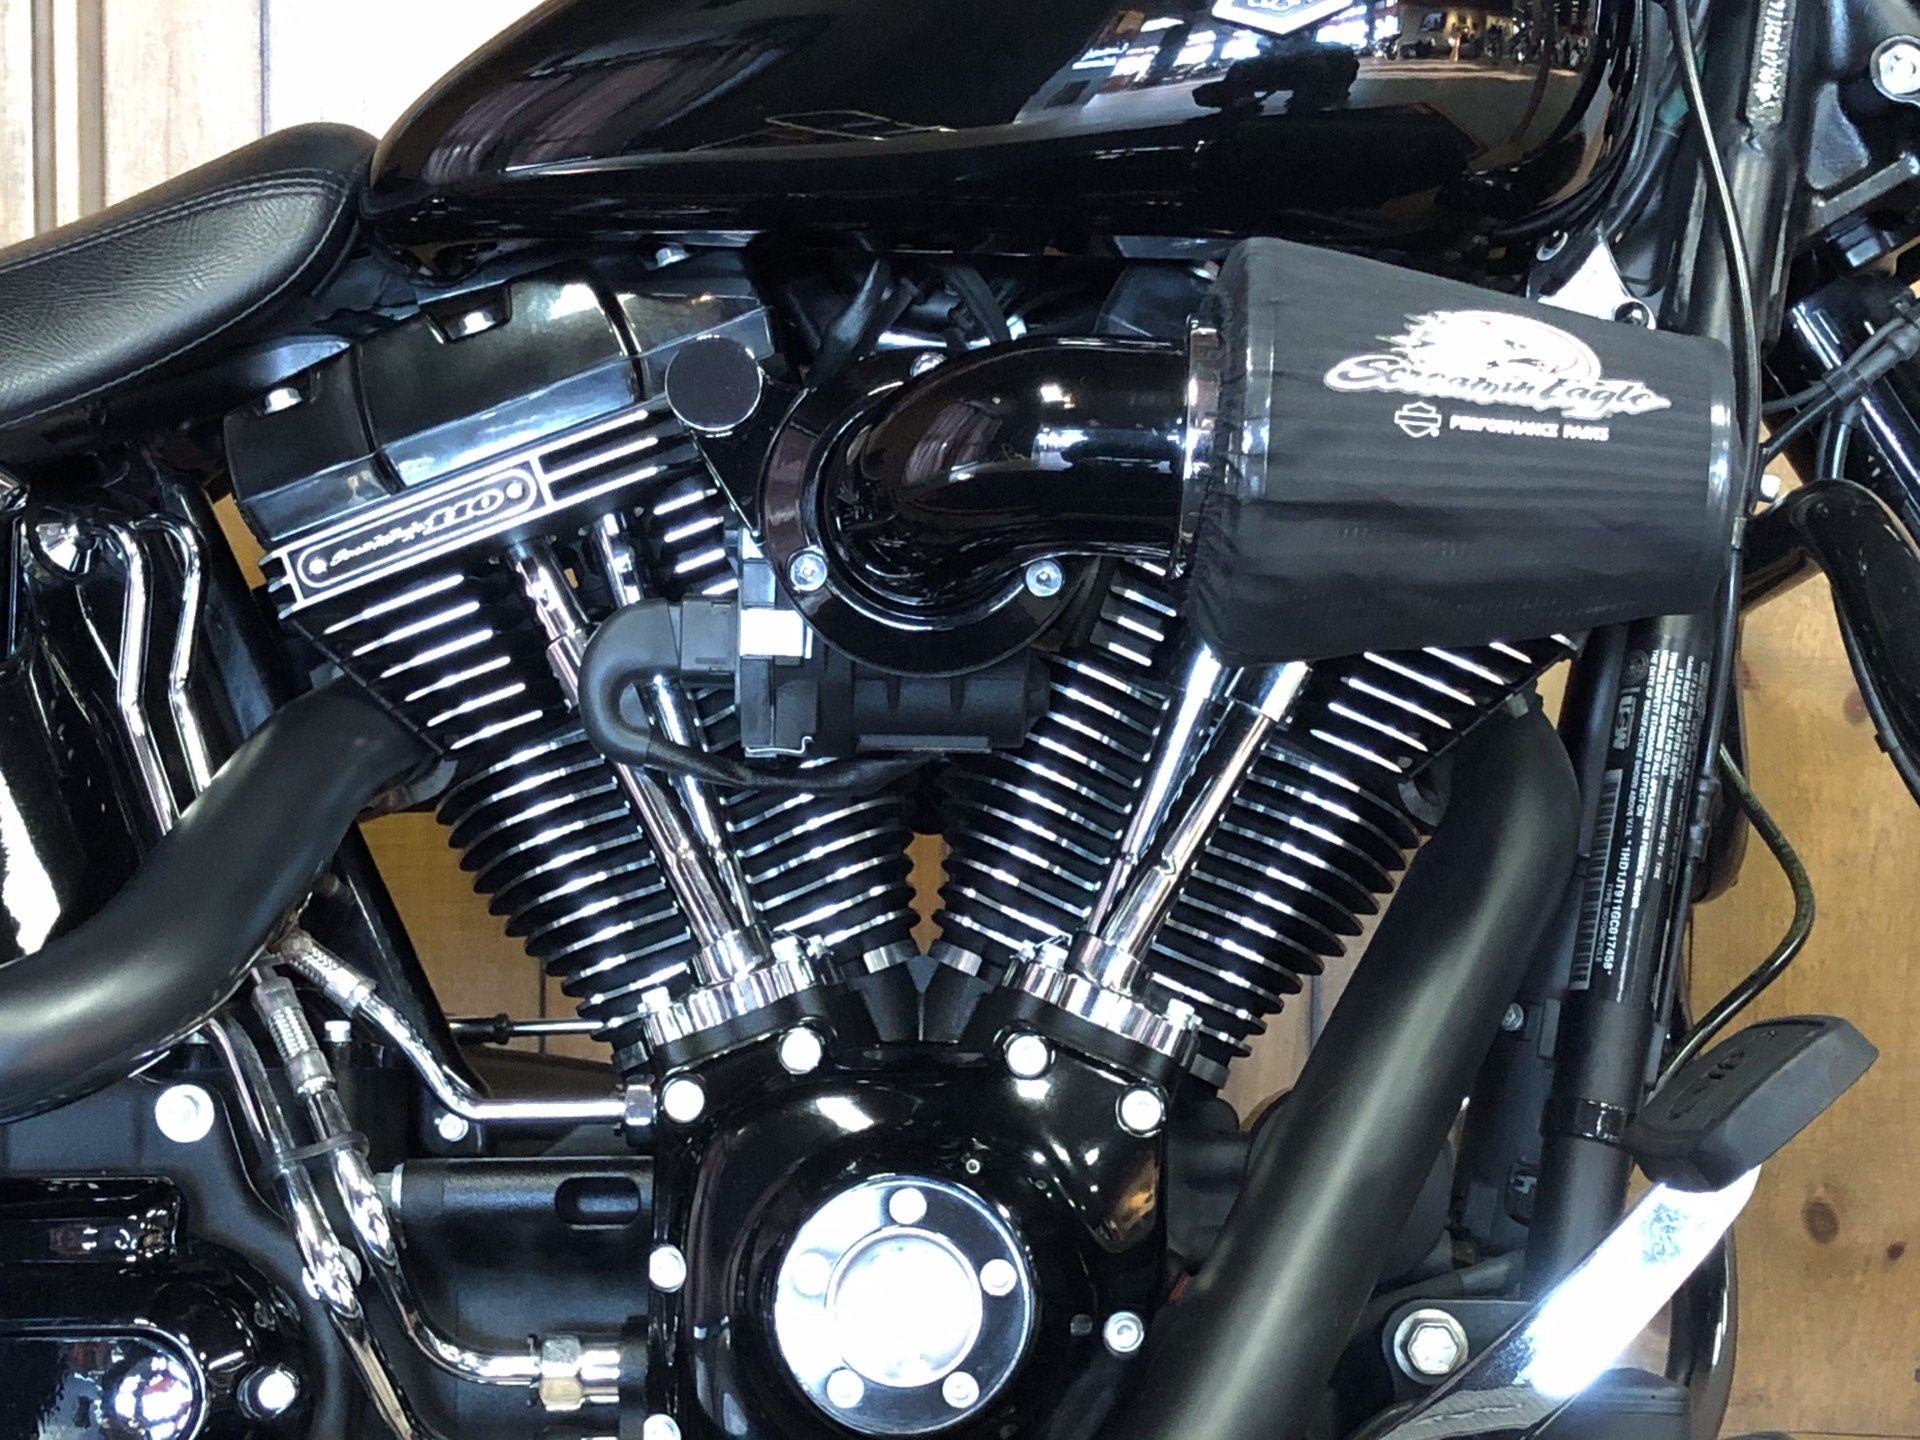 2016 Harley-Davidson Fat Boy Lo w/ 110 Motor in Harrisburg, Pennsylvania - Photo 3